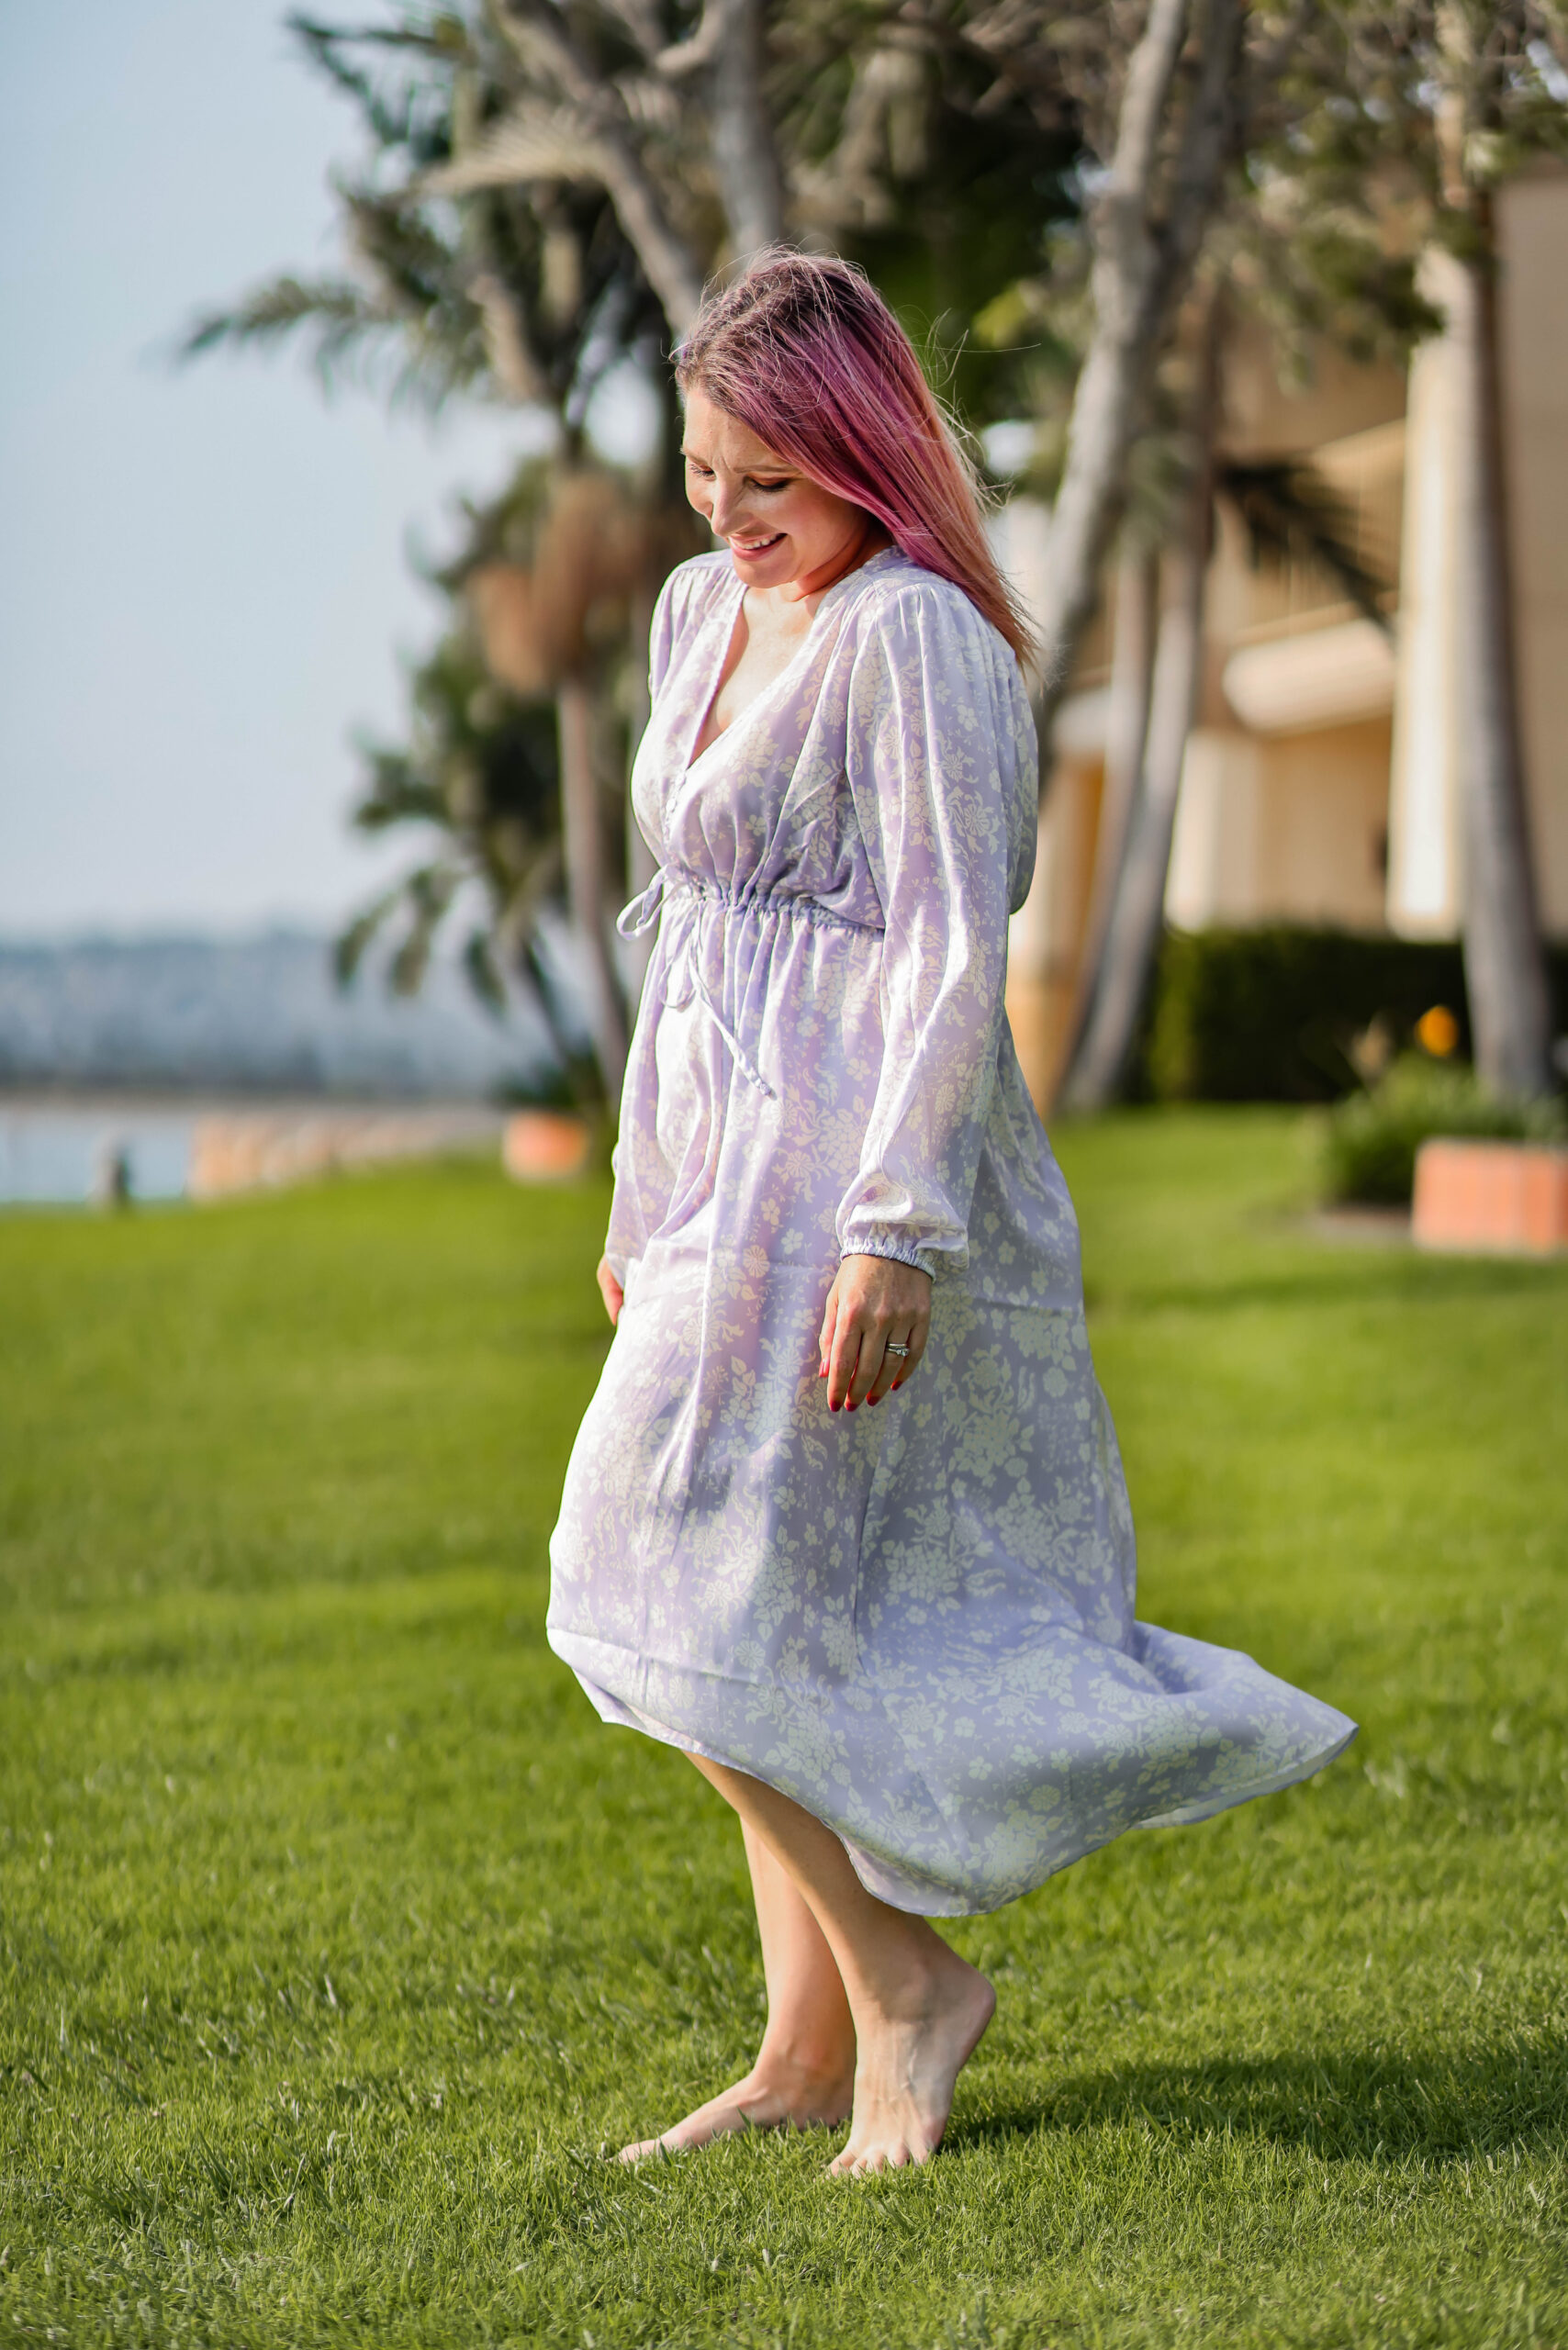 Did you know that Summersalt makes more than just swimsuits? This caftan dress is just LOVELY!